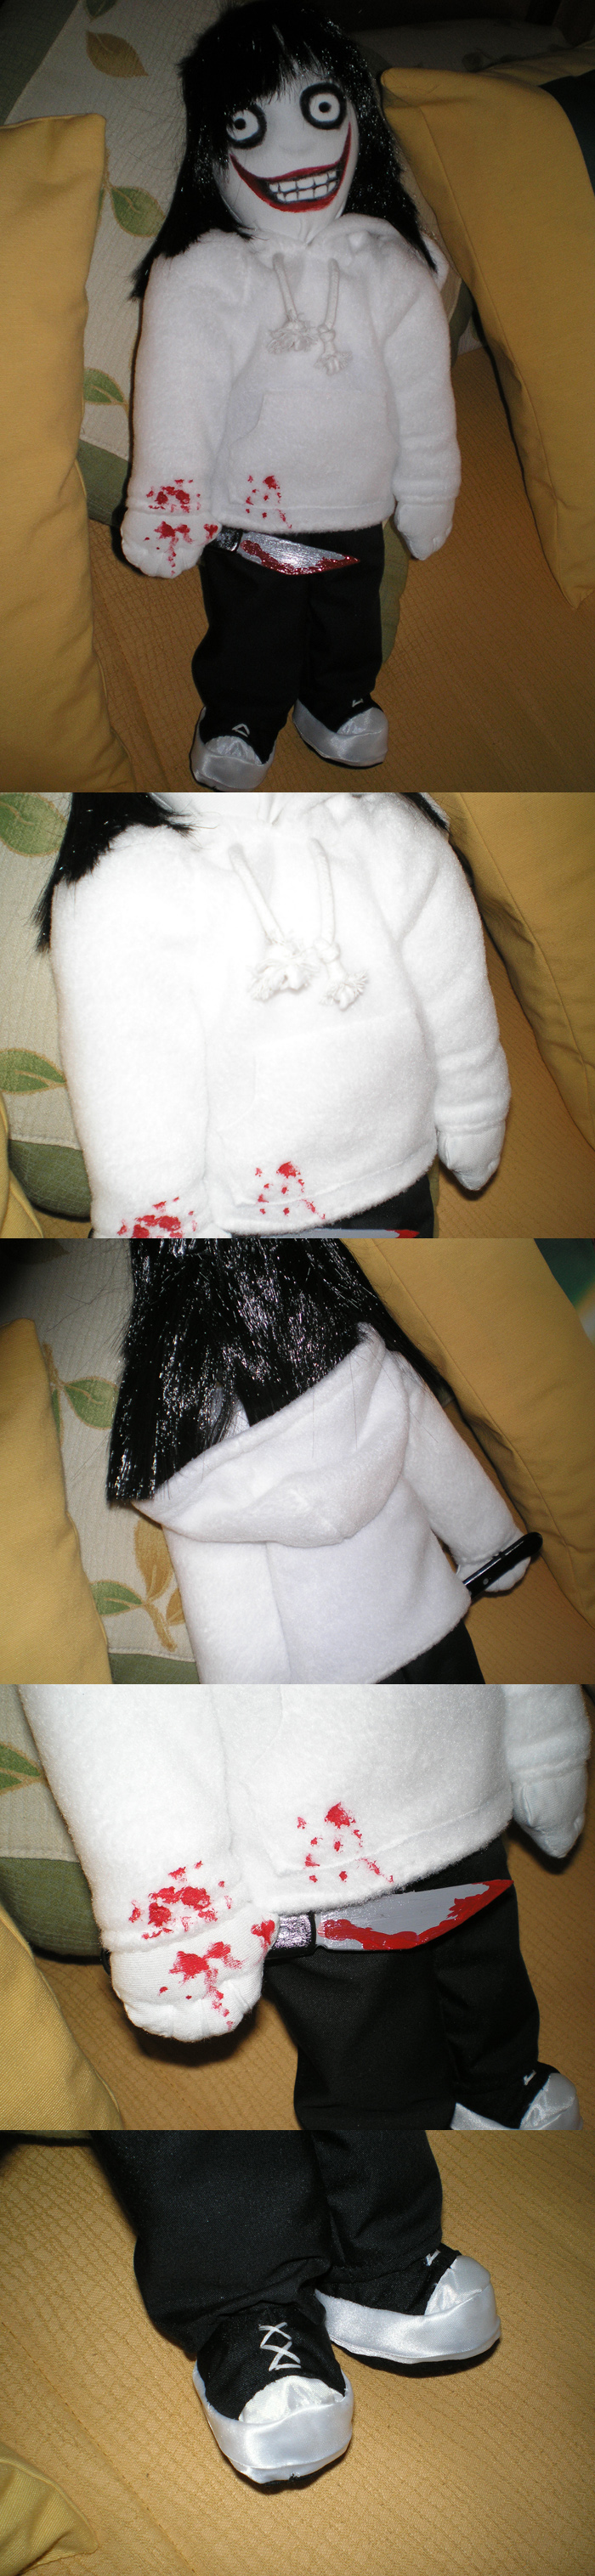 Jeff The Killer Plushy by Lagoon-Sadnes